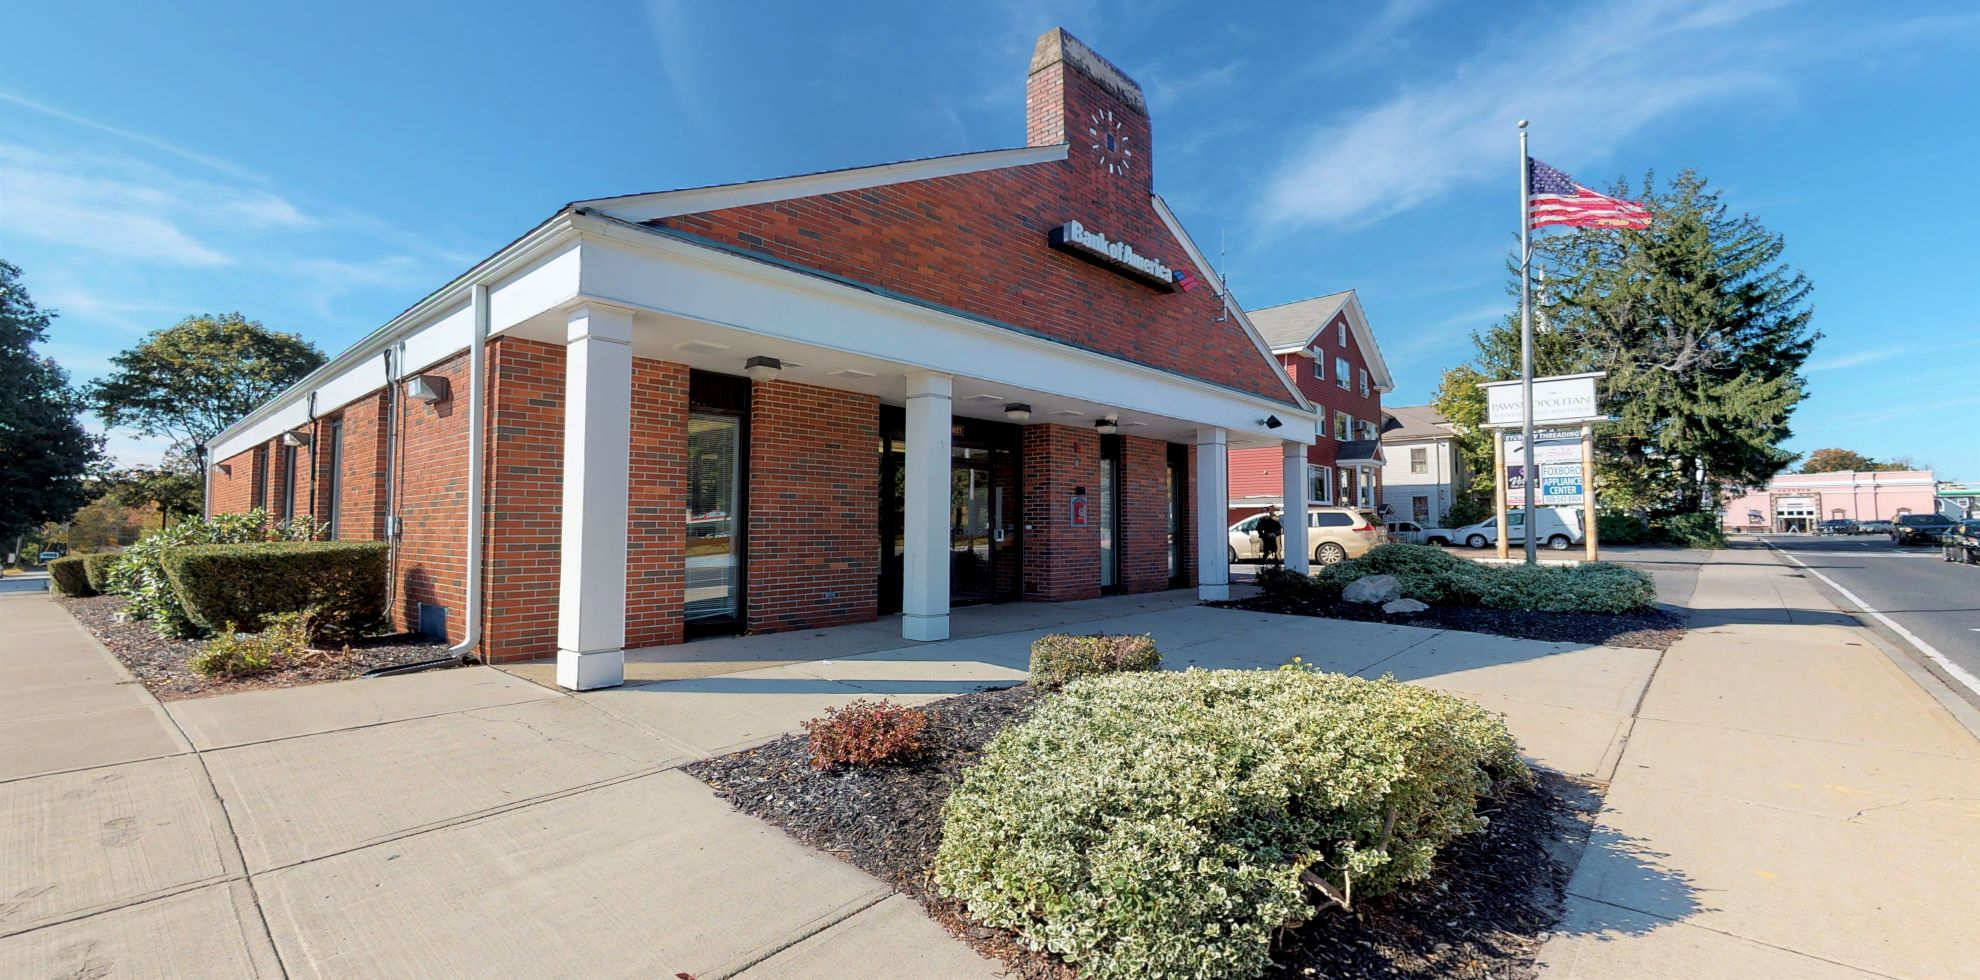 Bank of America financial center with drive-thru ATM   16 School St, Foxborough, MA 02035